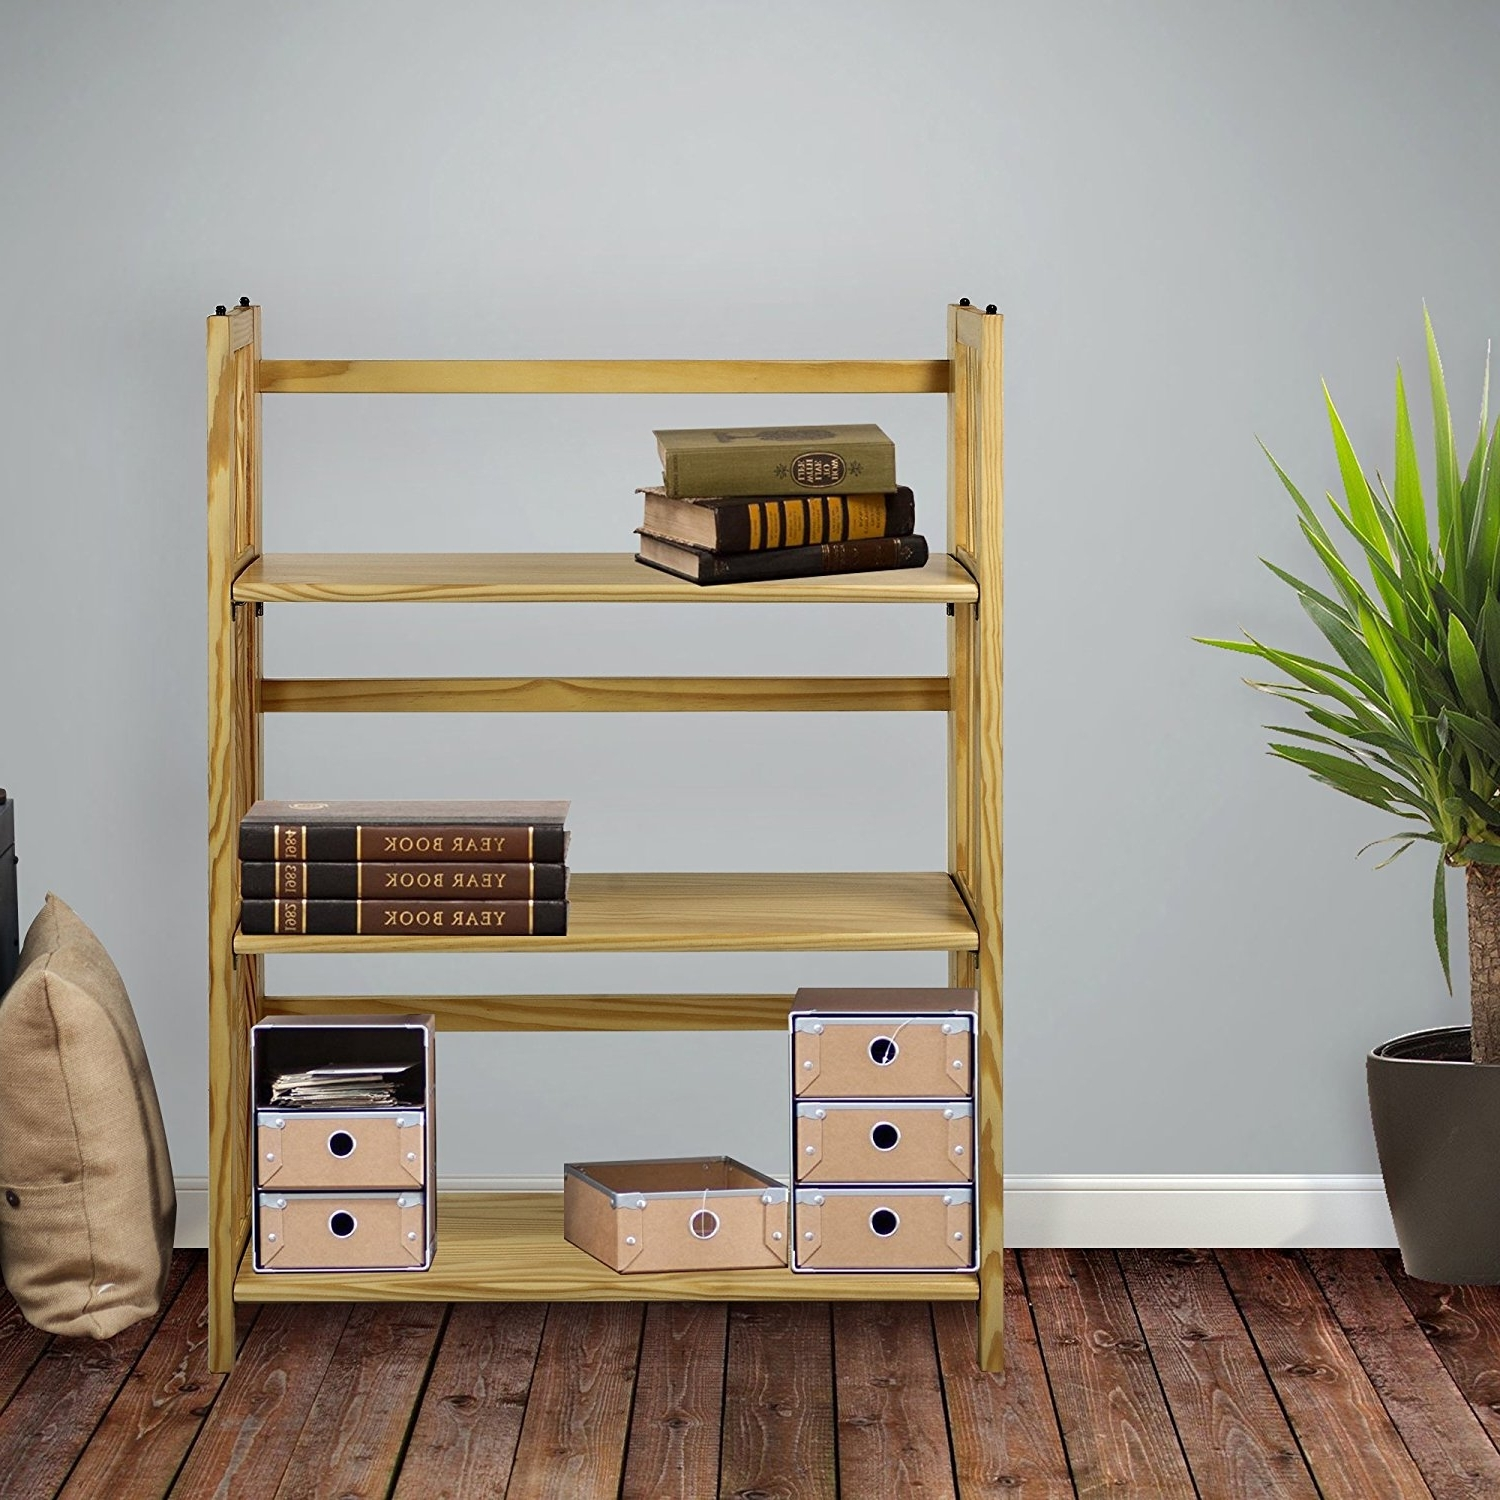 Popular Folding Bookcases For Top 13 Folding Bookcases And Bookshelves Of 2017 For Your Home (View 14 of 15)